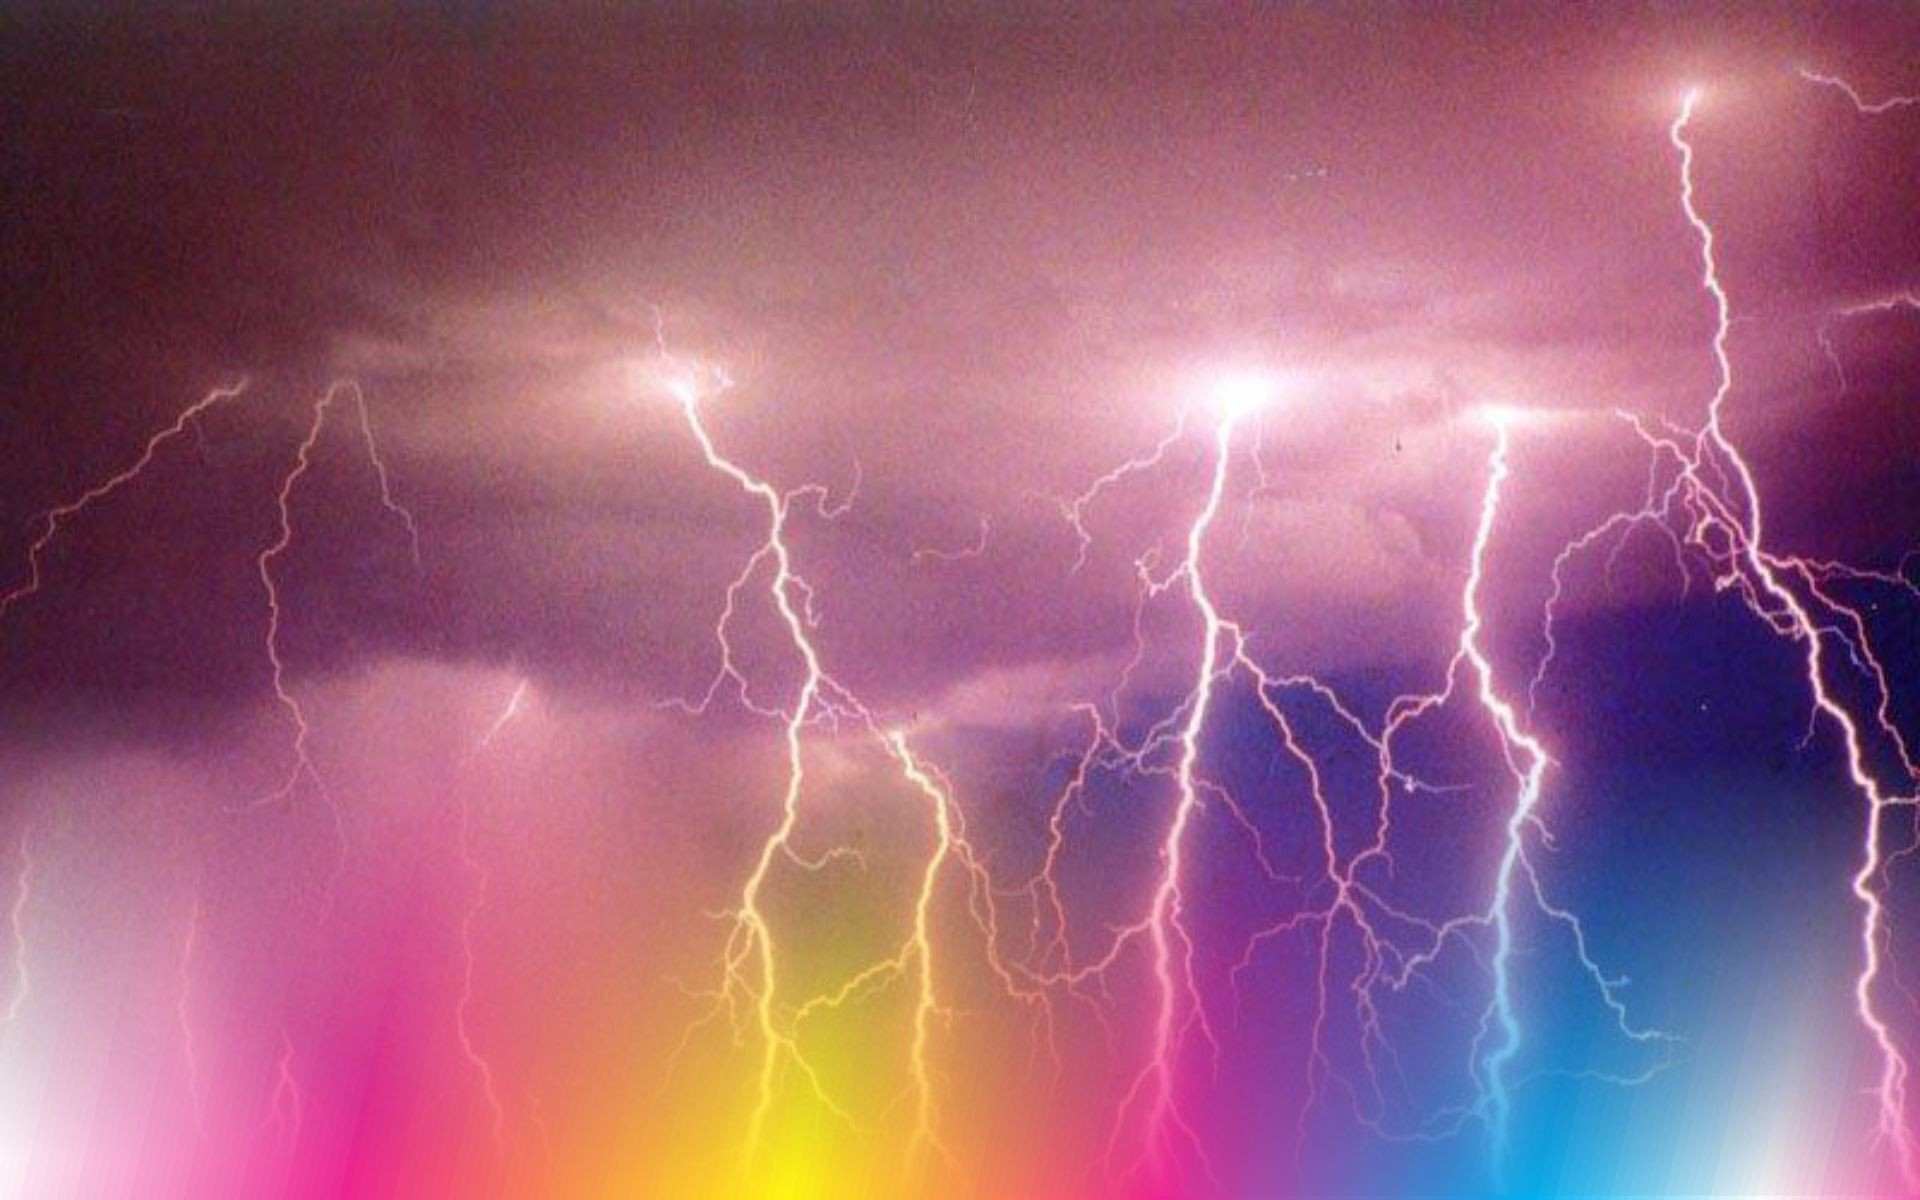 Res: 1920x1200, Wallpapers For > Pink Lightning Wallpaper Sky Watch, Storm Clouds, Lightning  Strikes,